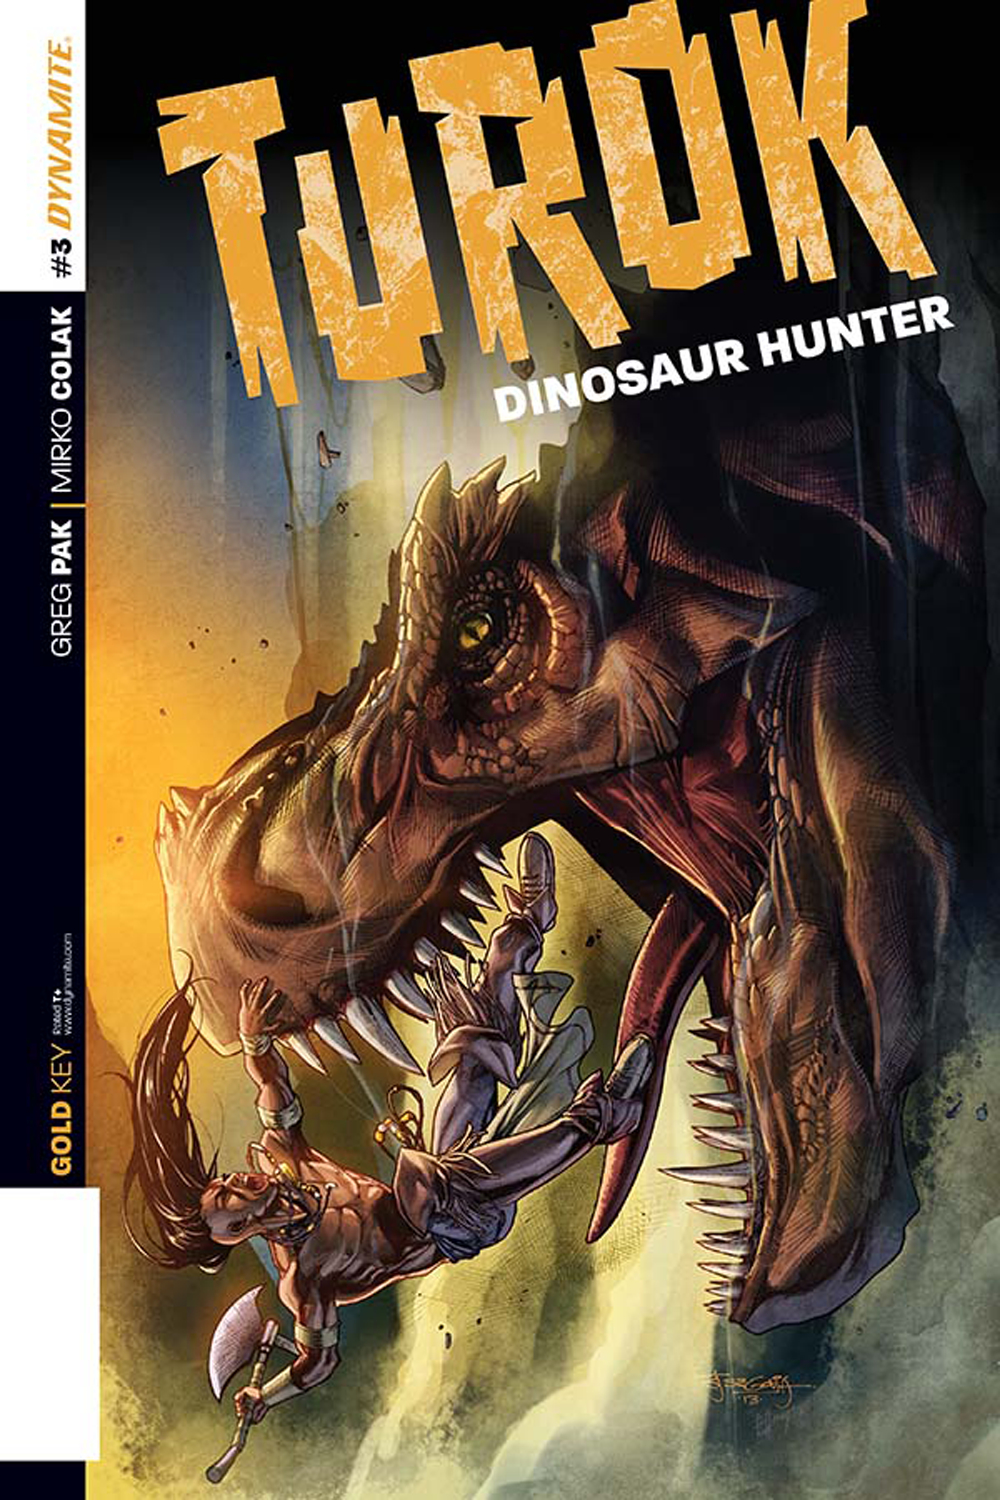 TUROK DINOSAUR HUNTER #3 50 COPY SEGOVIA ORIG ART INCV